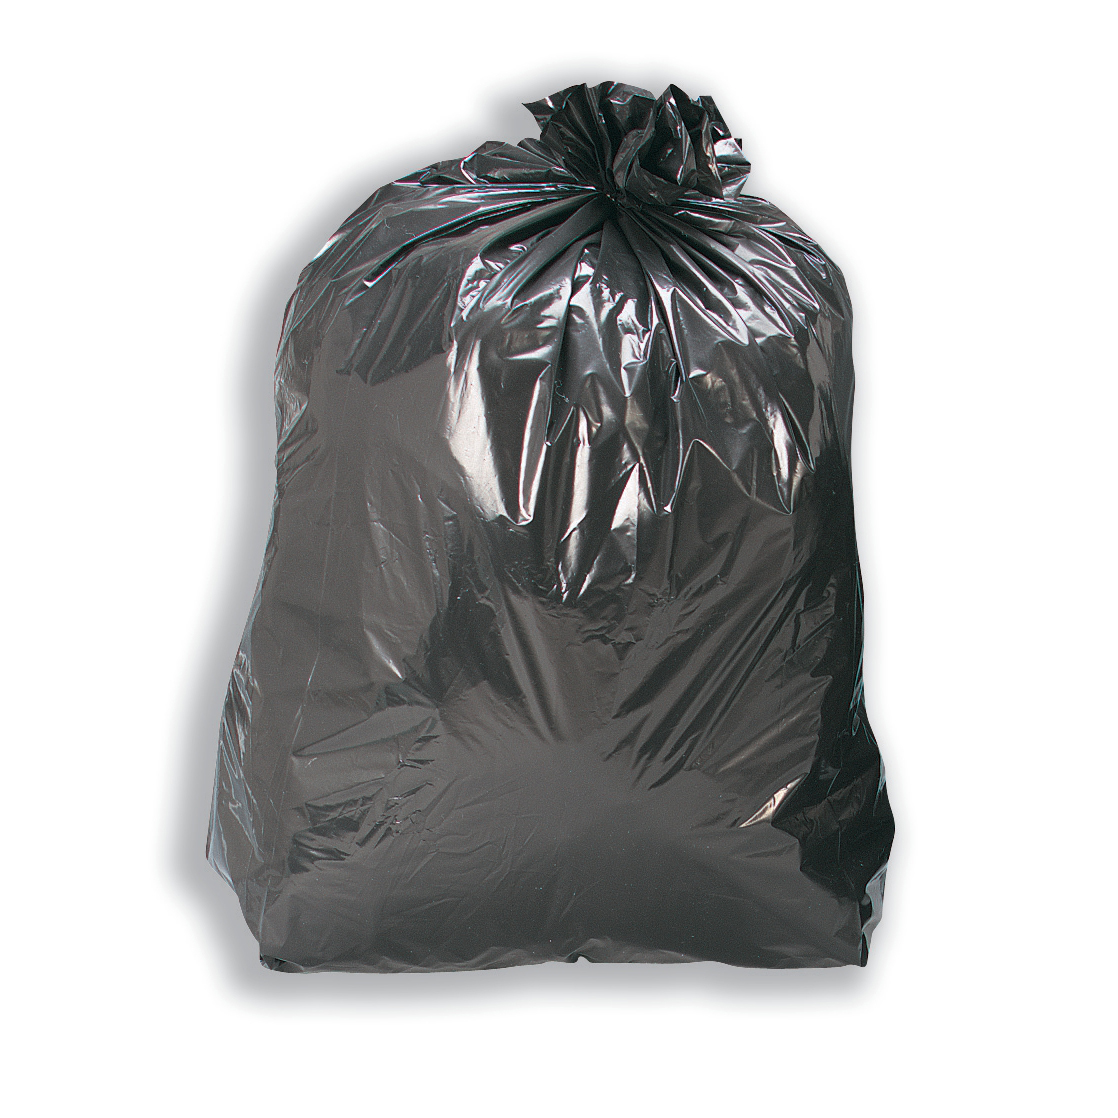 5 Star Facilities Bin Liners Medium/Heavy Duty 110 Litre Capacity W450/690xH945mm Black [Pack 200]